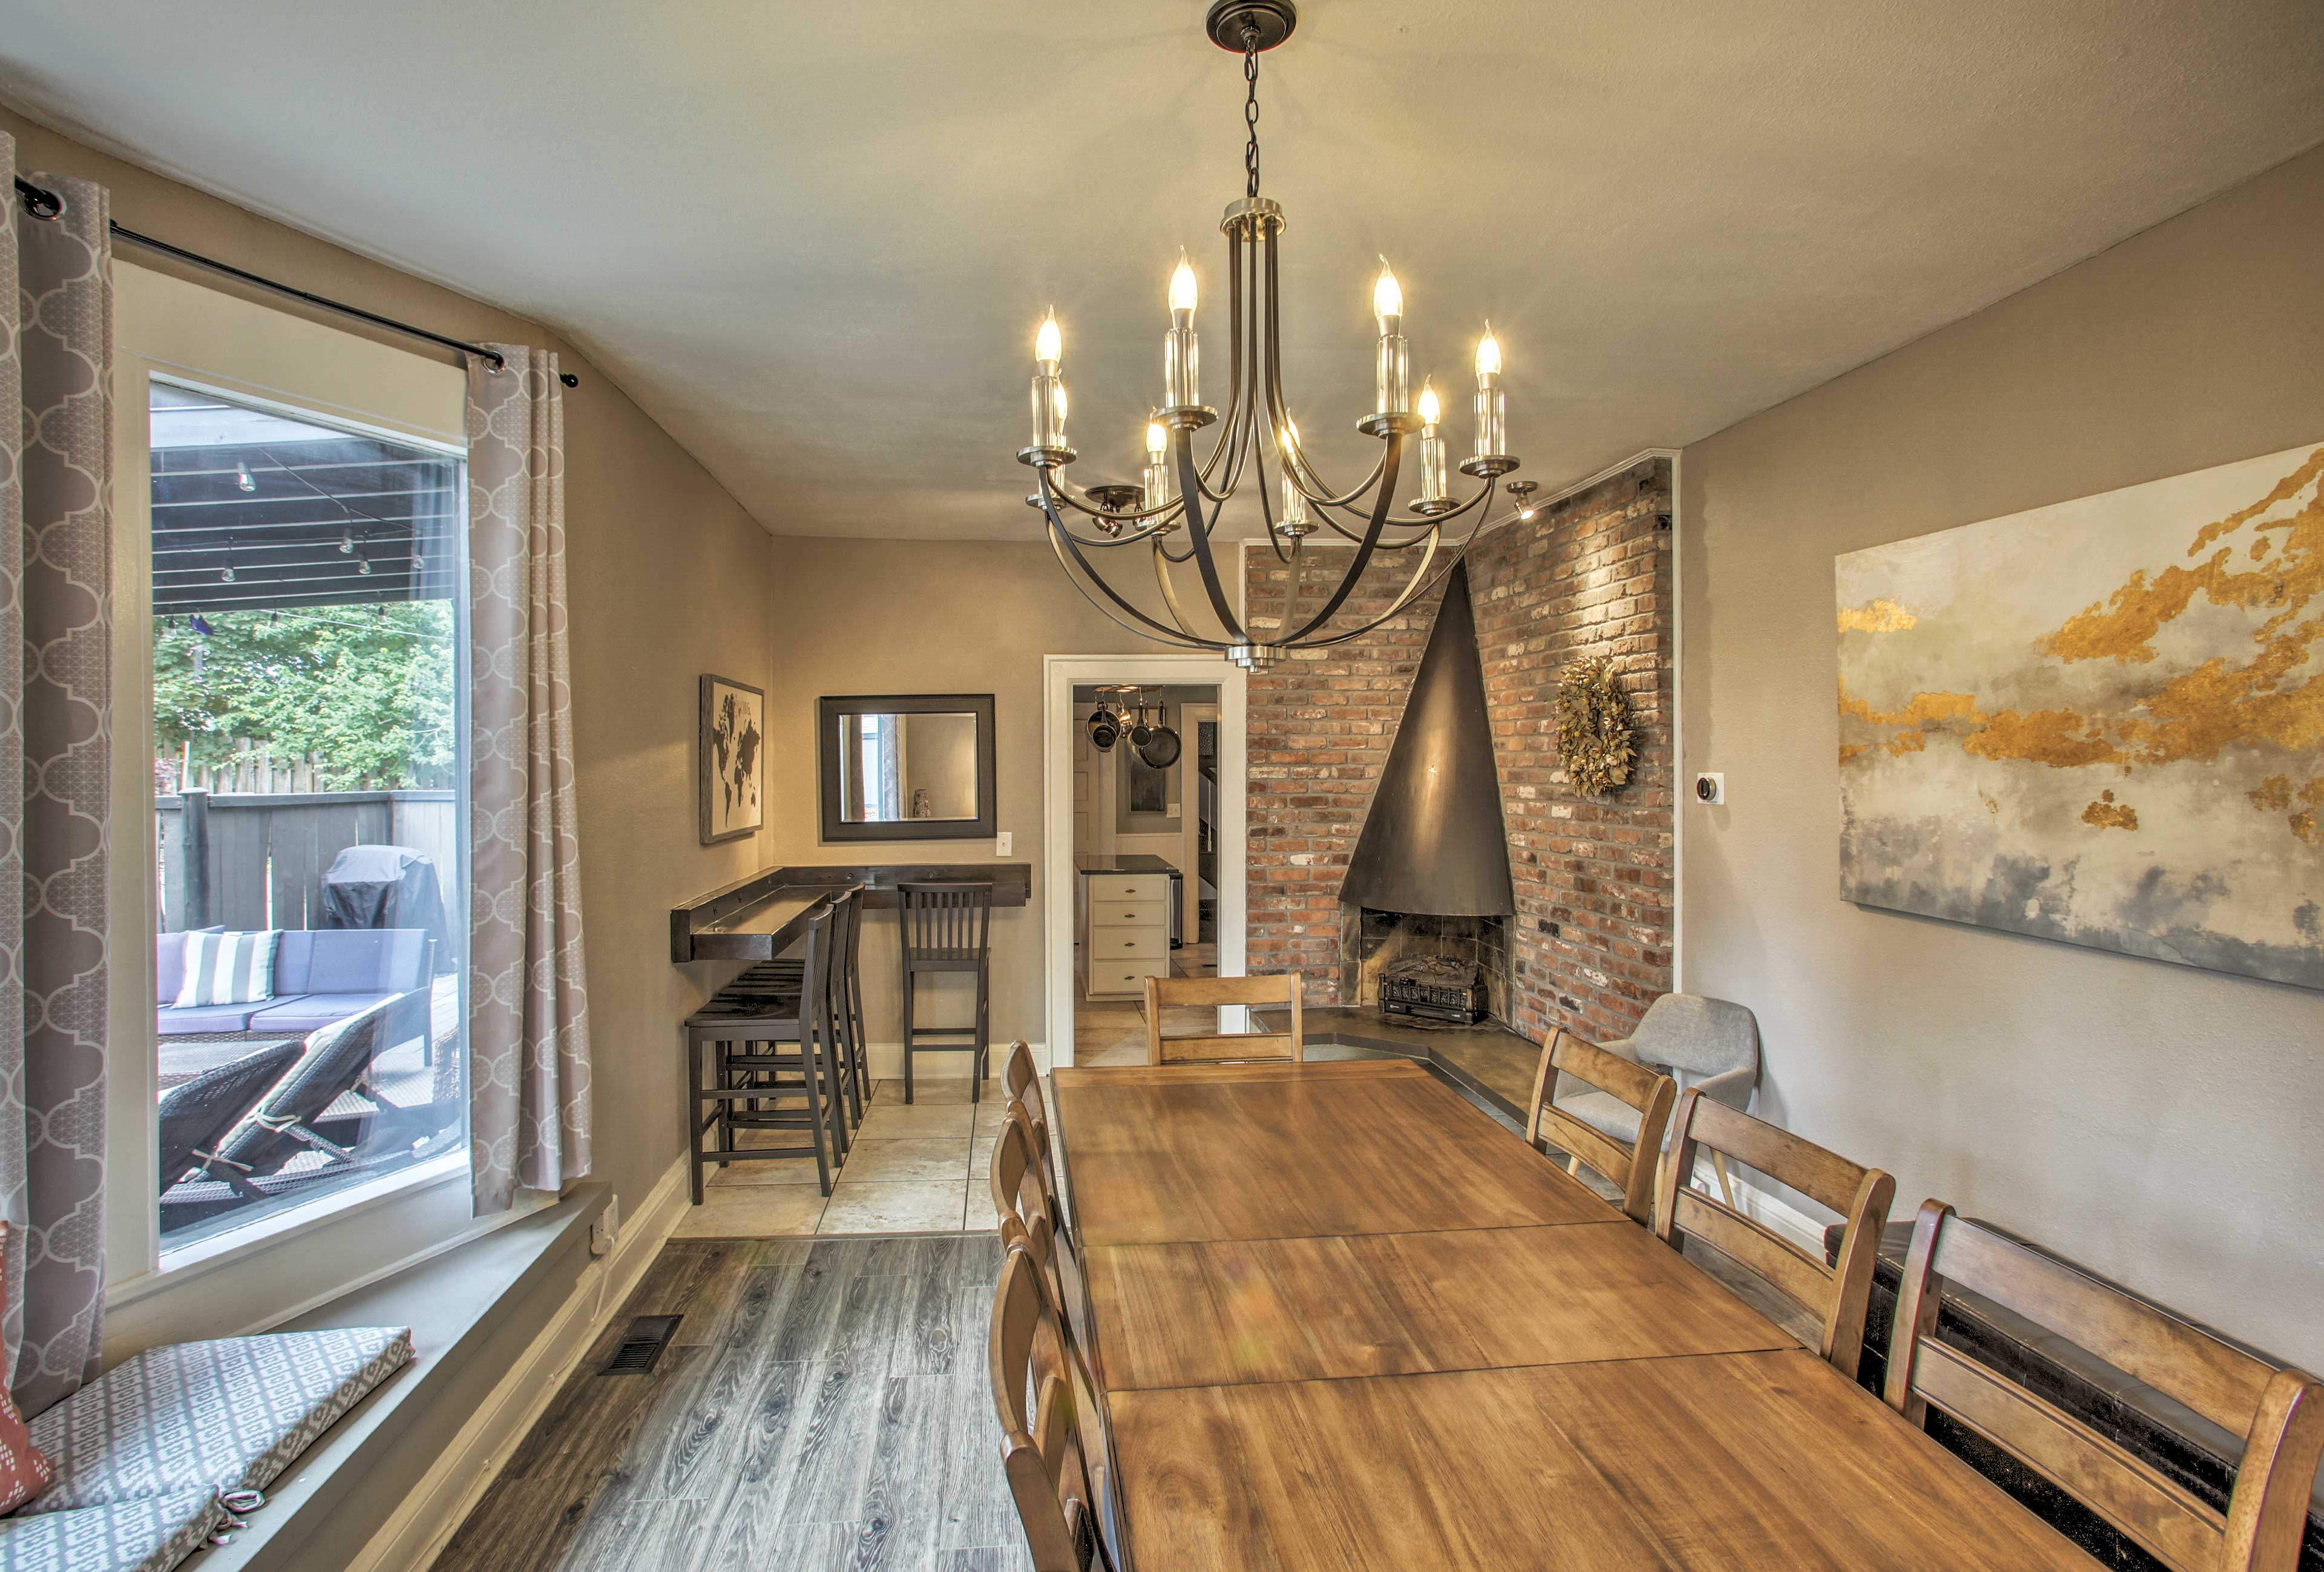 Enjoy an elegant dinner in the dining room. (Fireplace not available for use)